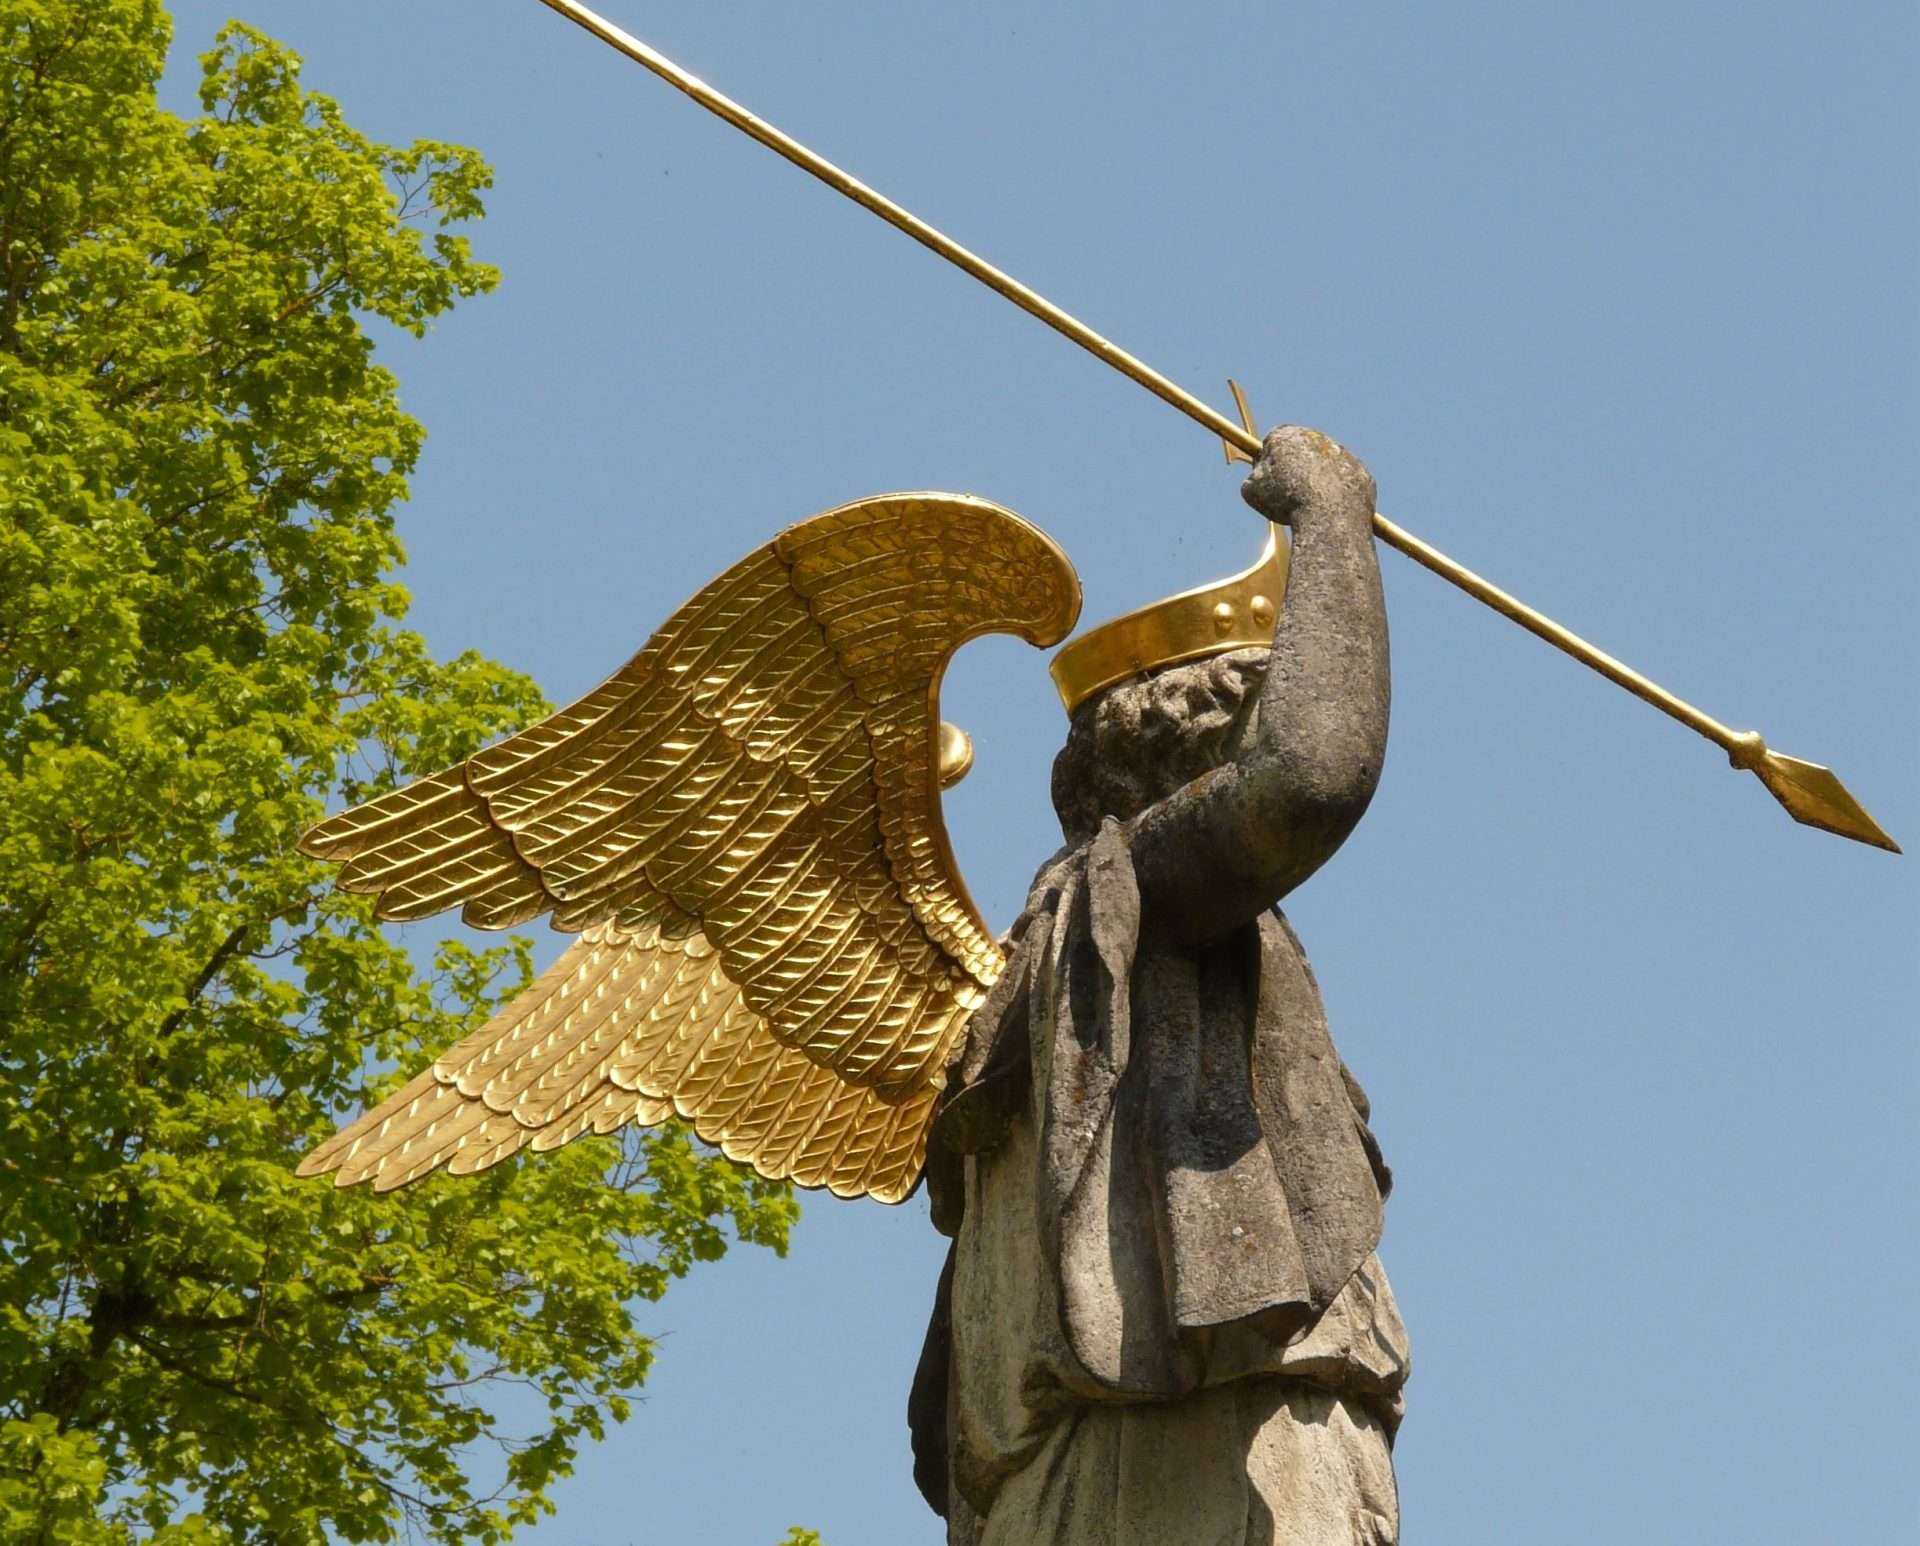 Did you know an Angel physically stabbed this Saint in the heart?